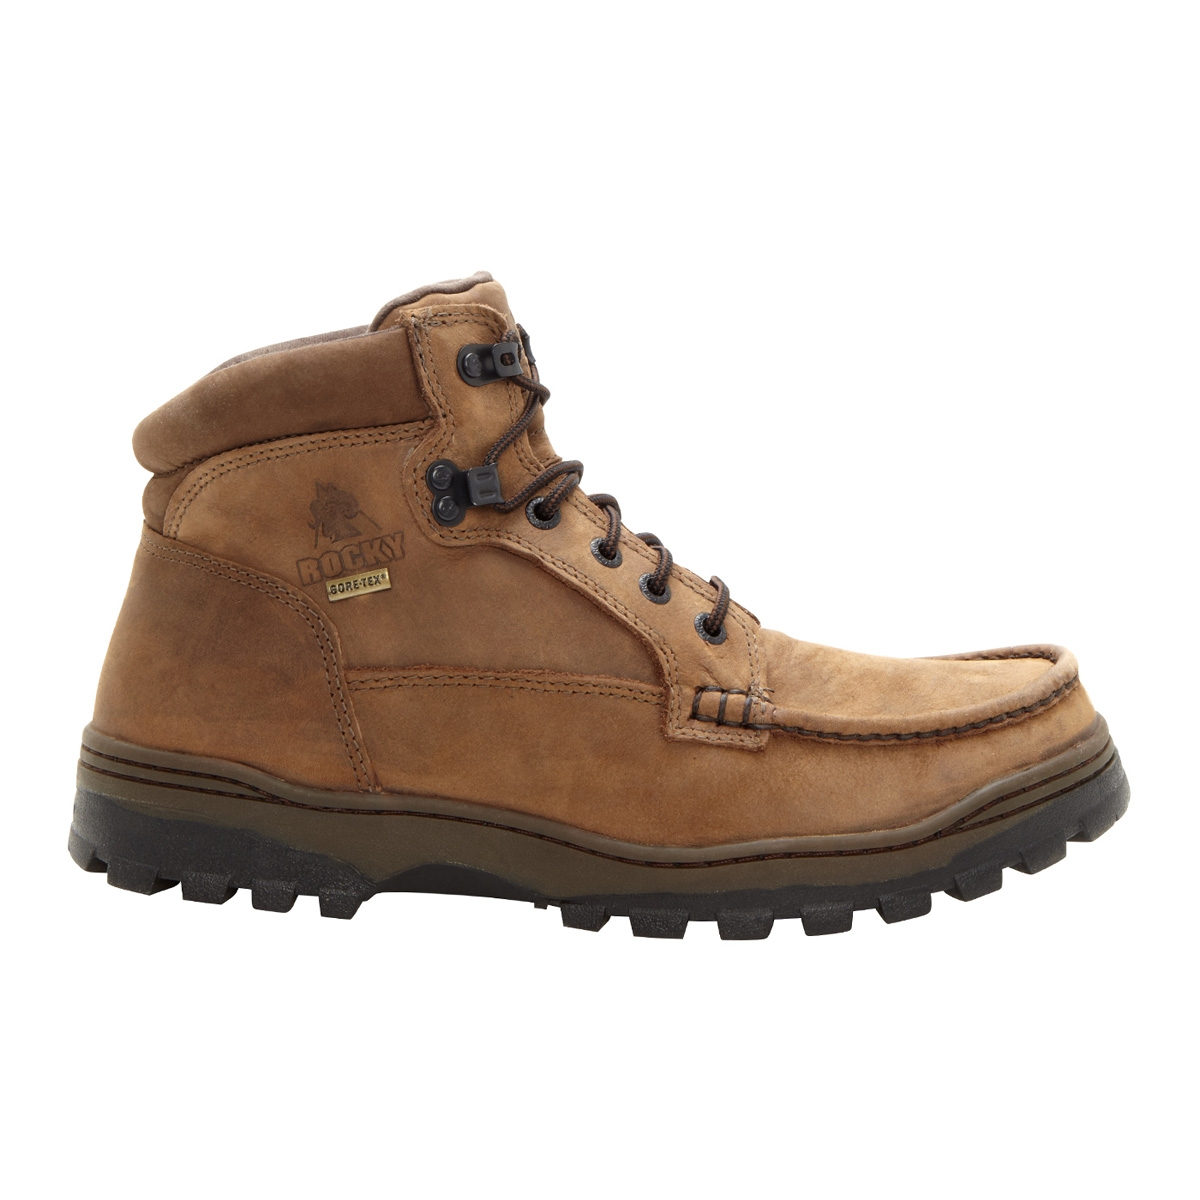 Rocky Outback Hiker 6 Inch GTX Leather Hiking Boots - Brown ...